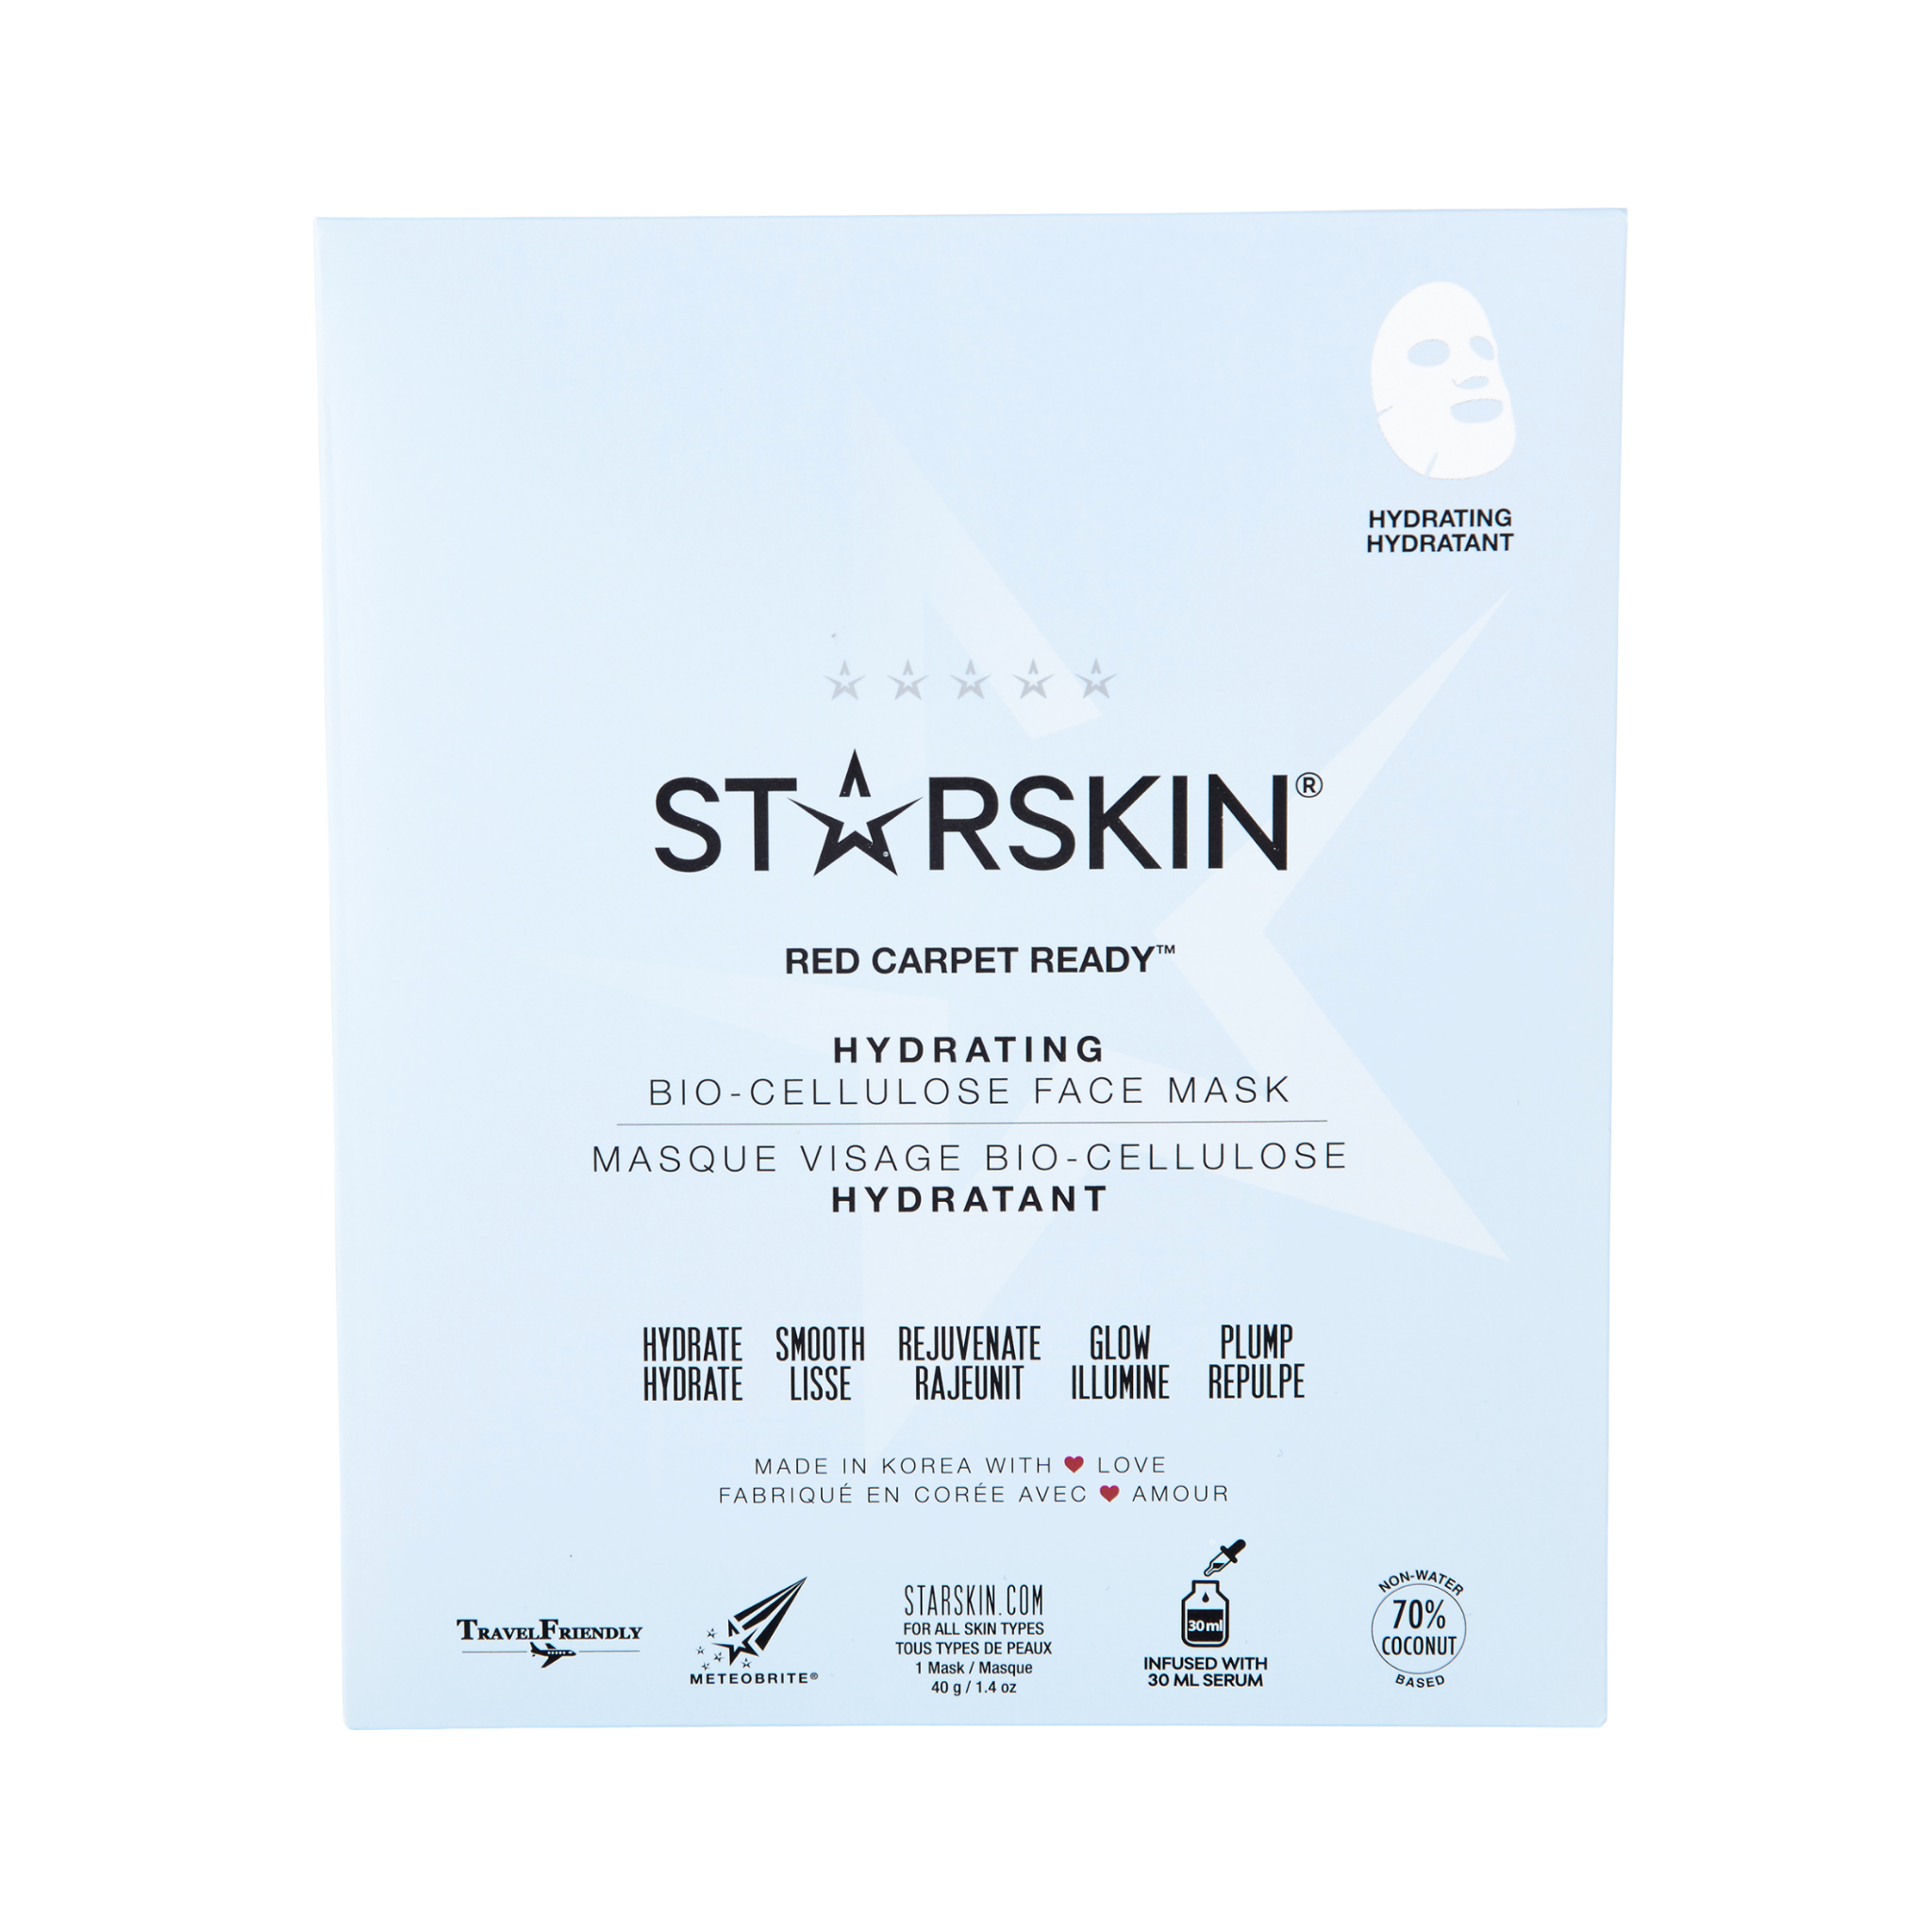 RED CARPET READY BIO CELLULOSE FACE MASK